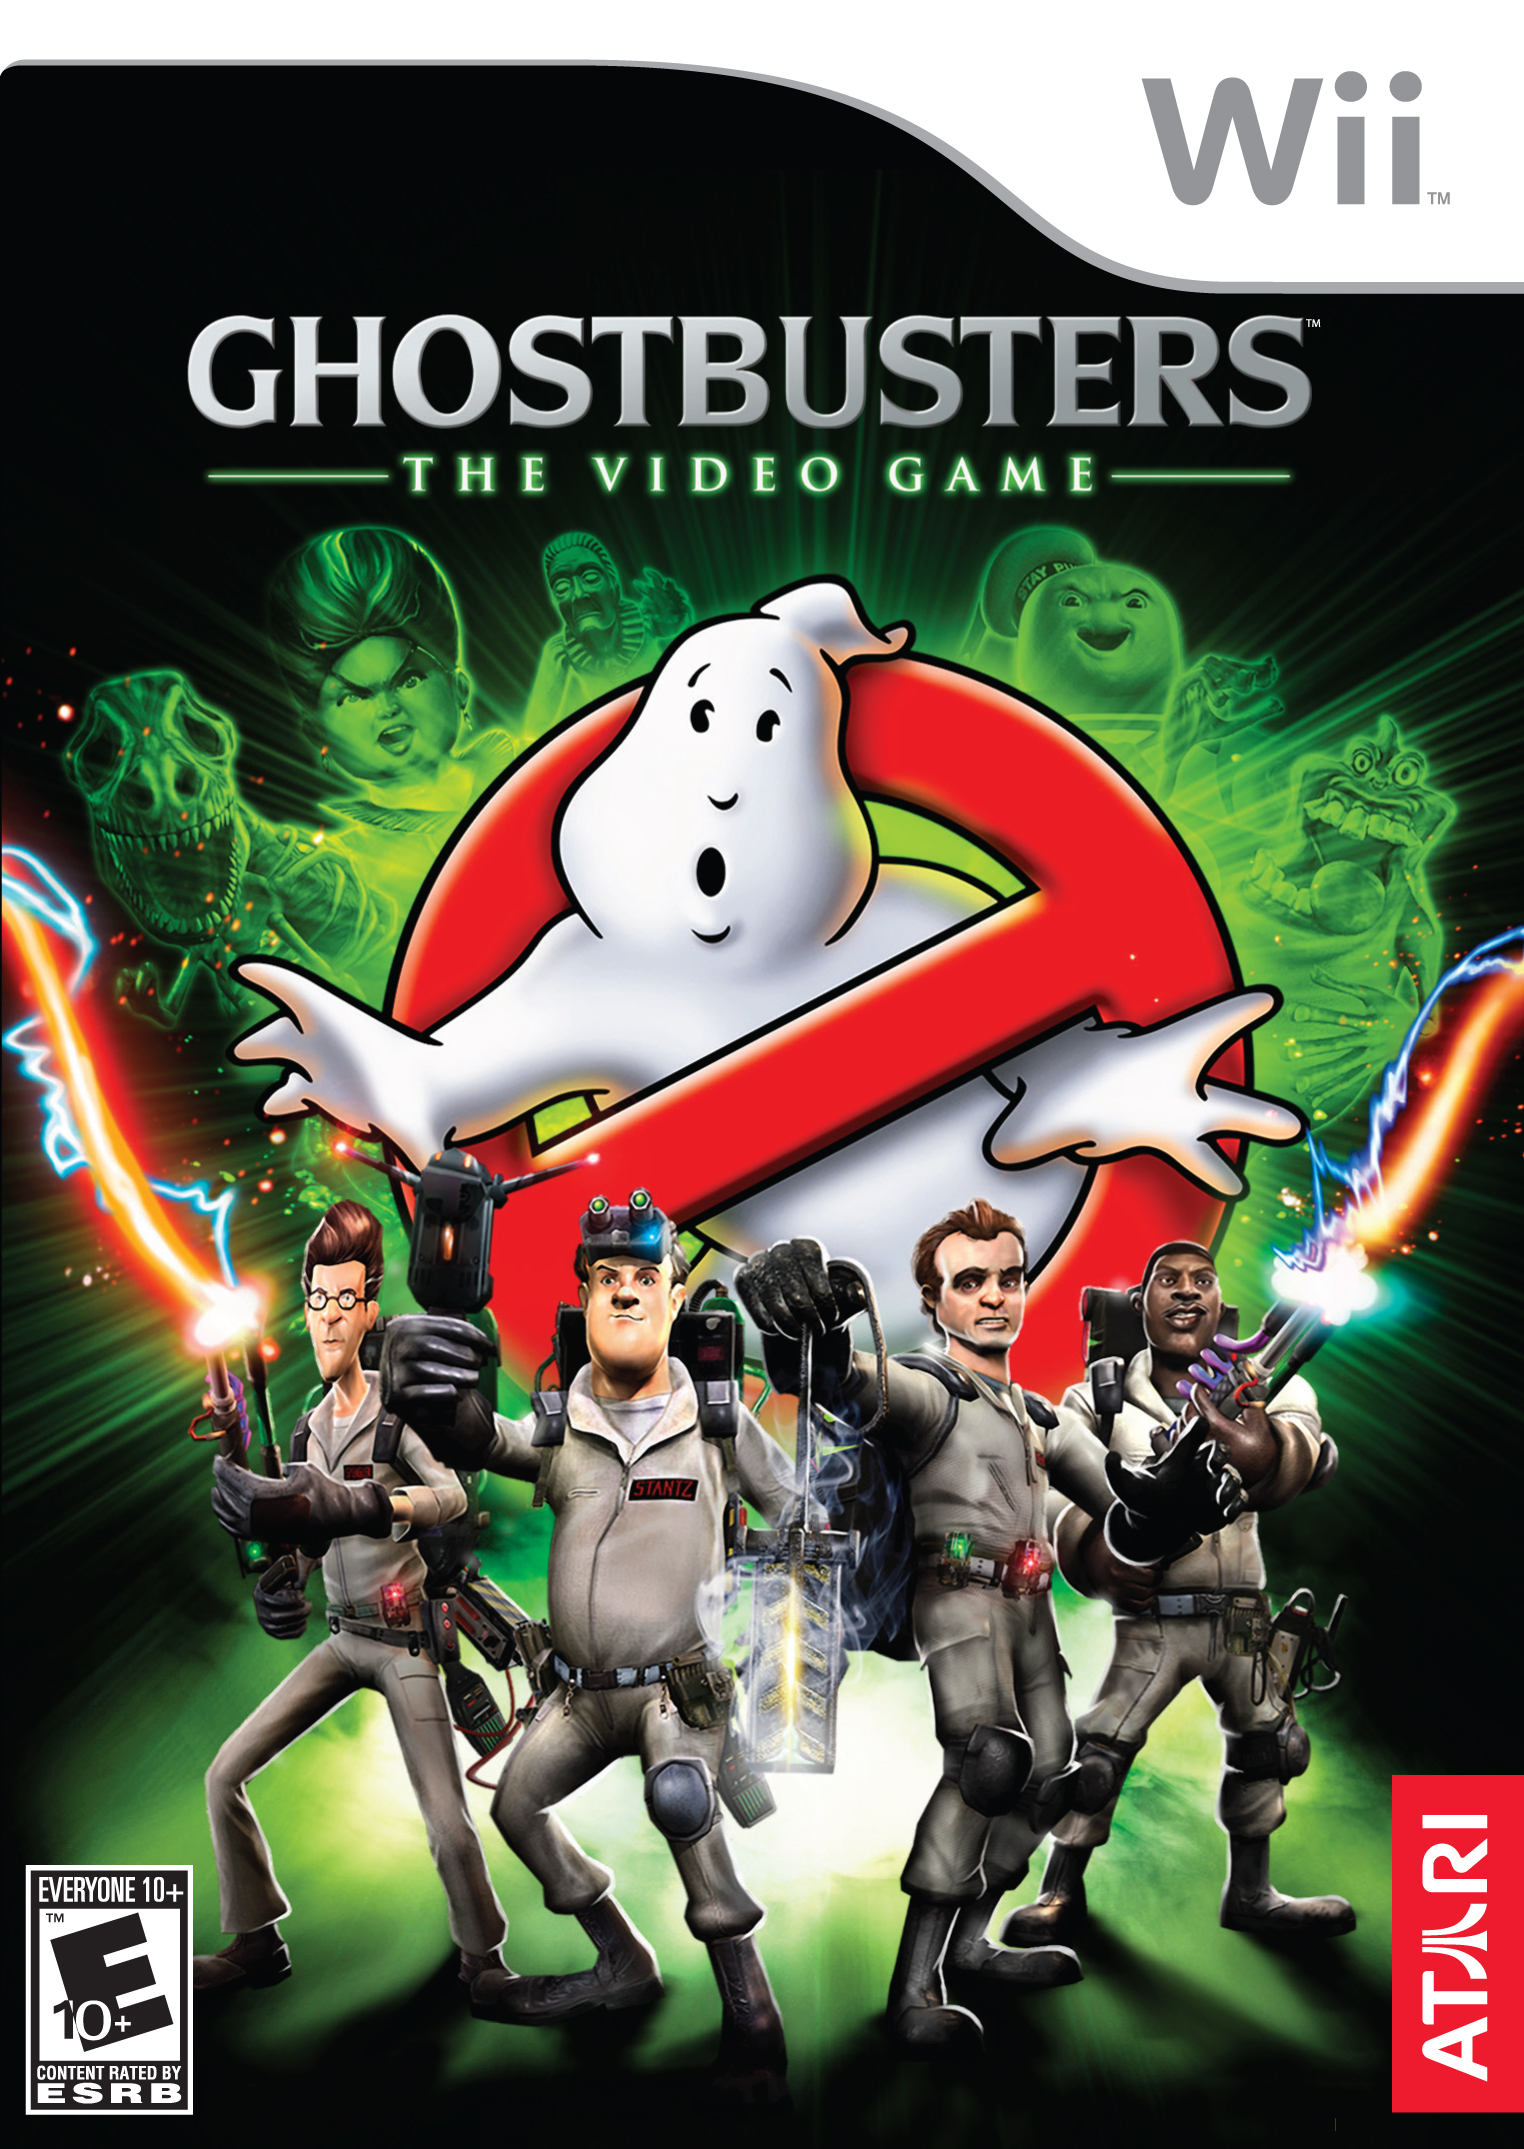 WII_L_Ghostbusters